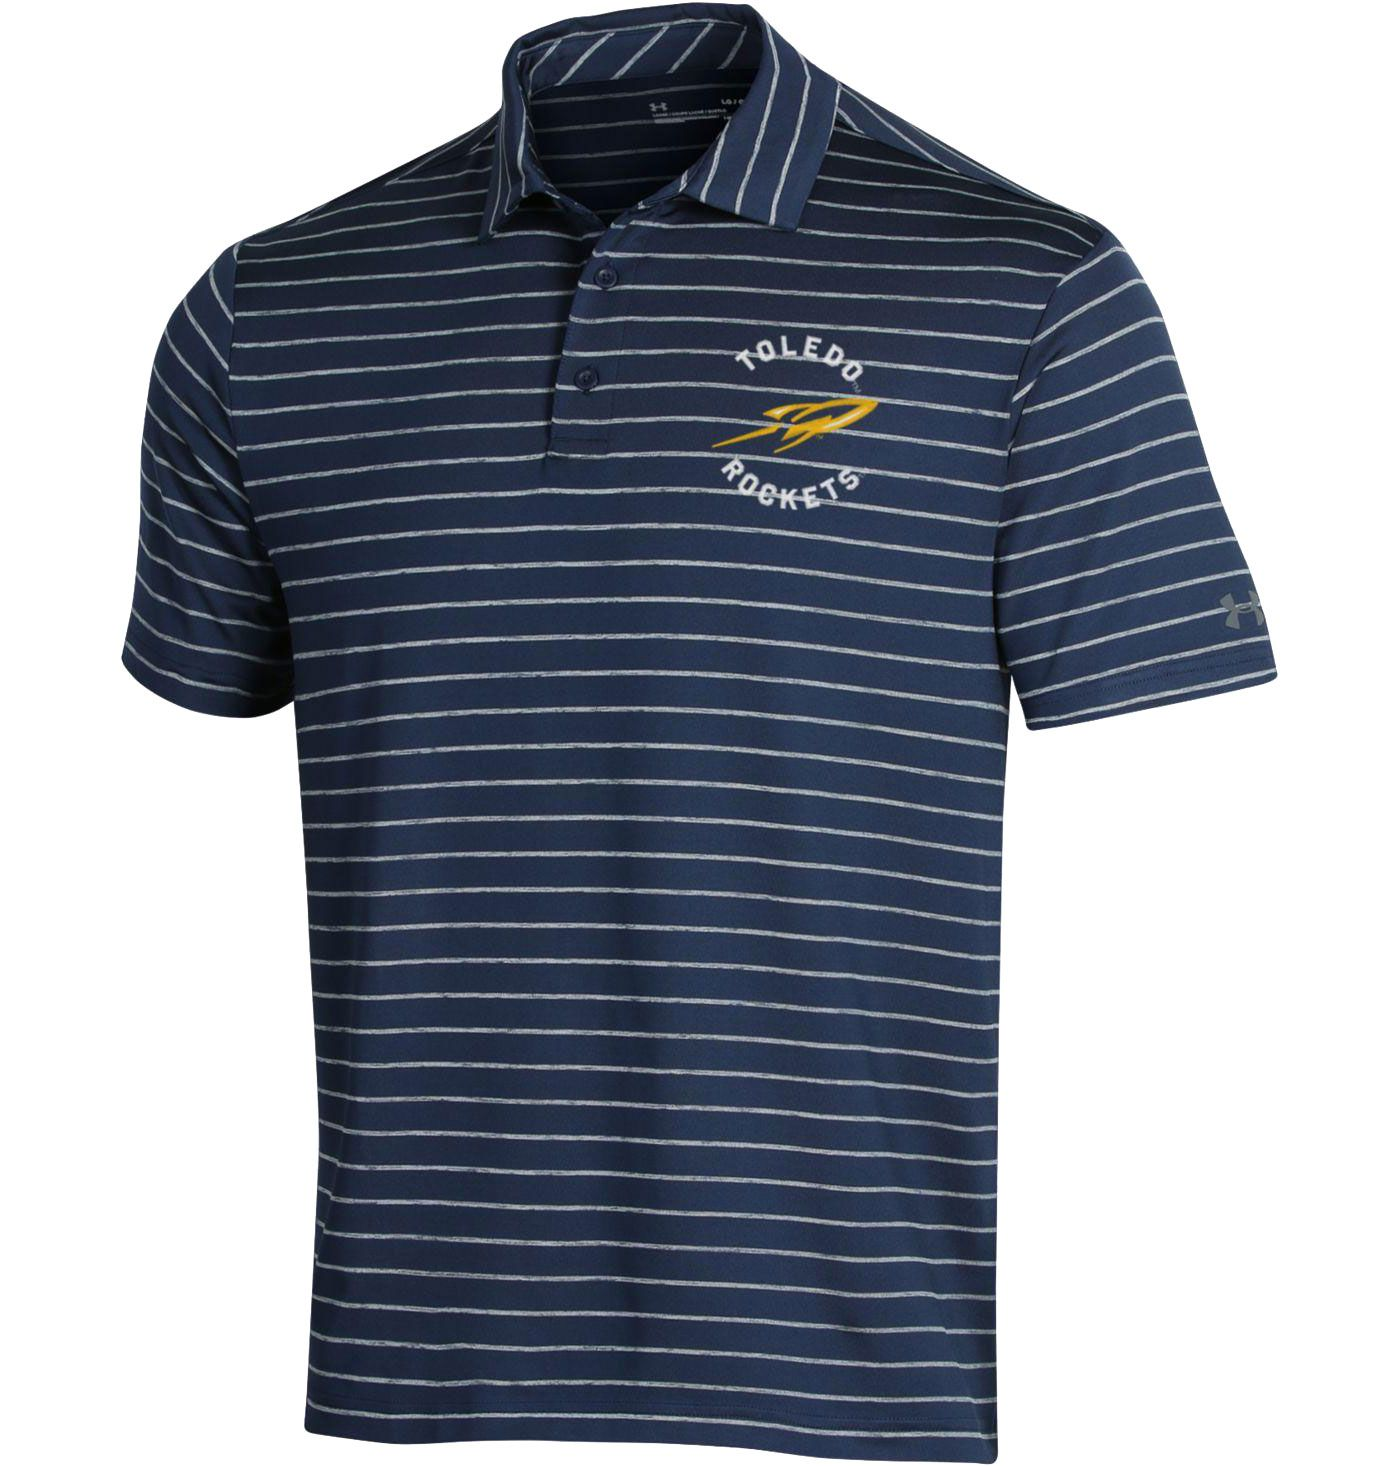 Under Armour Men's Toledo Rockets Midnight Blue Playoff Tour Striped Polo